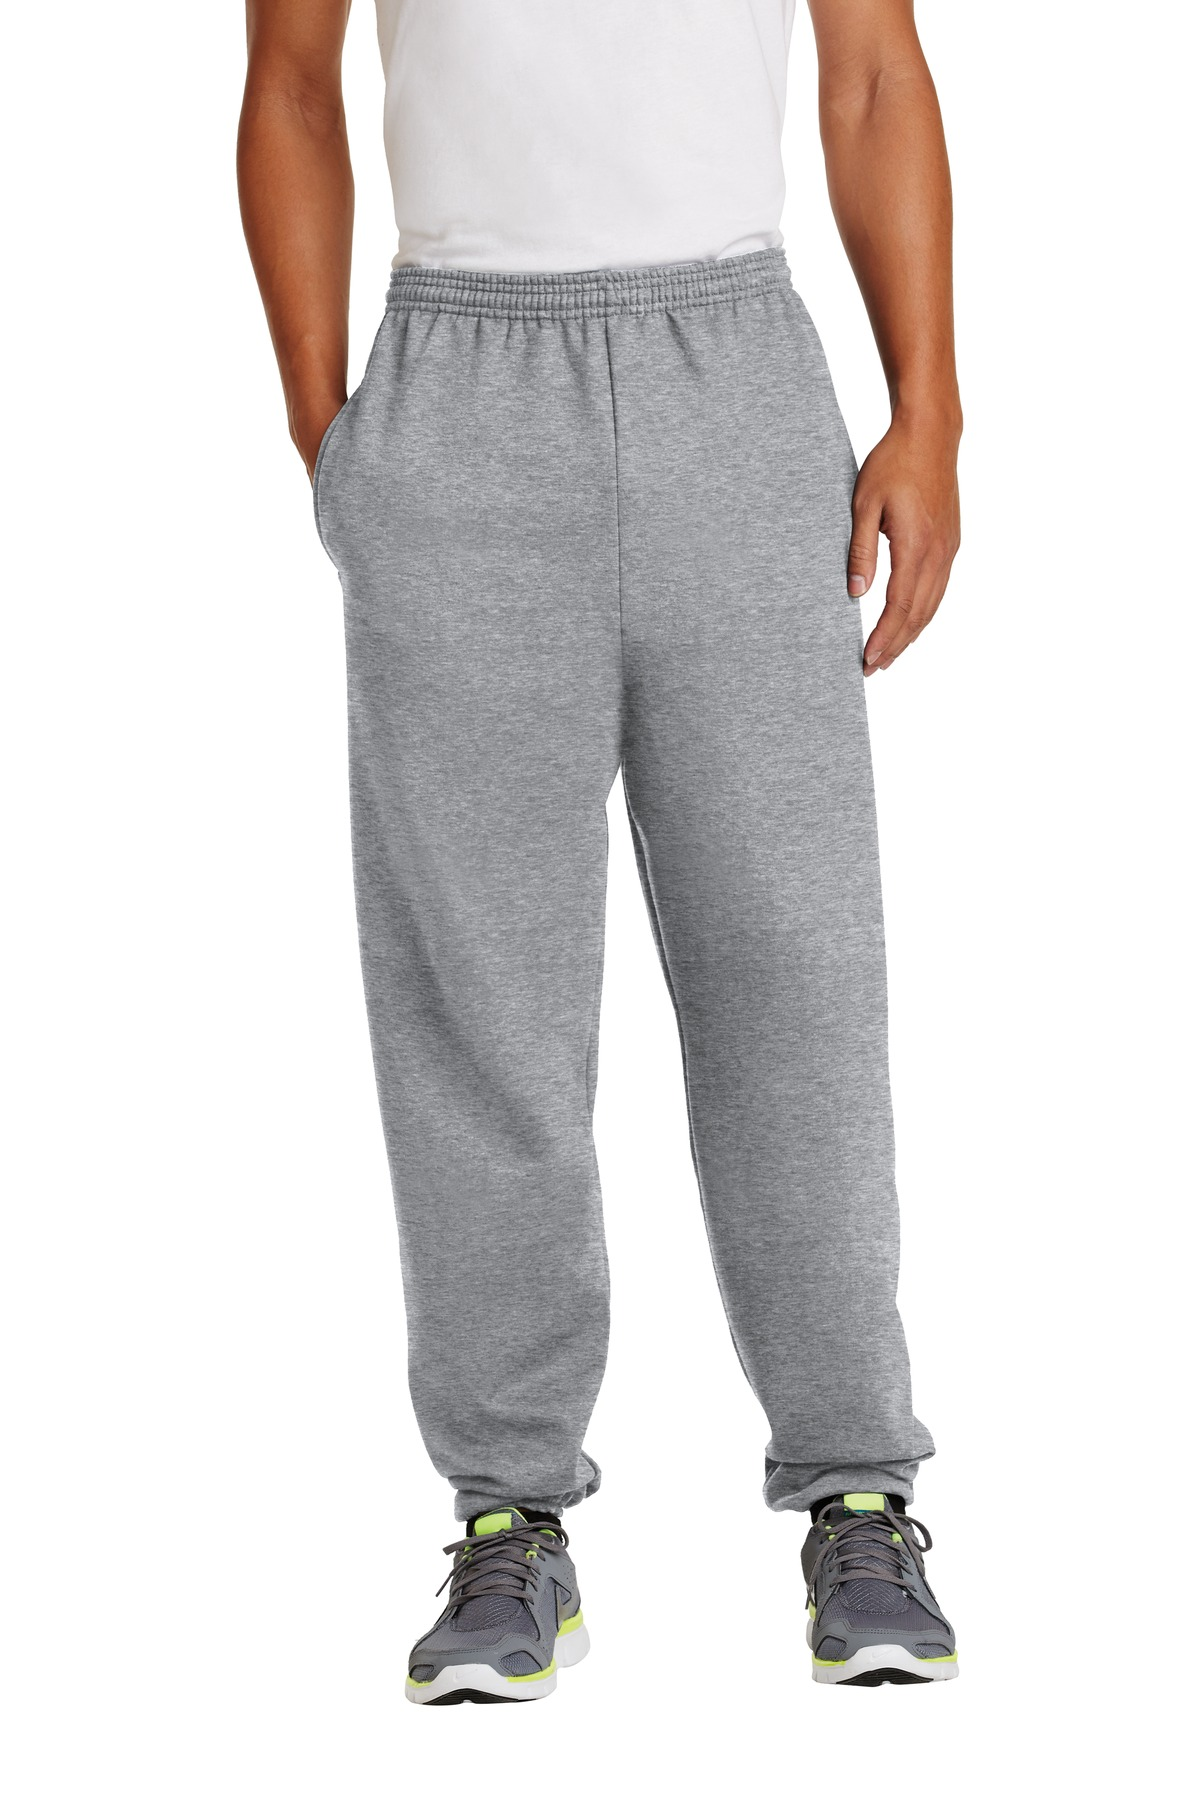 Port & Company ®  - Essential Fleece Sweatpant with Pockets.  PC90P - Athletic Heather